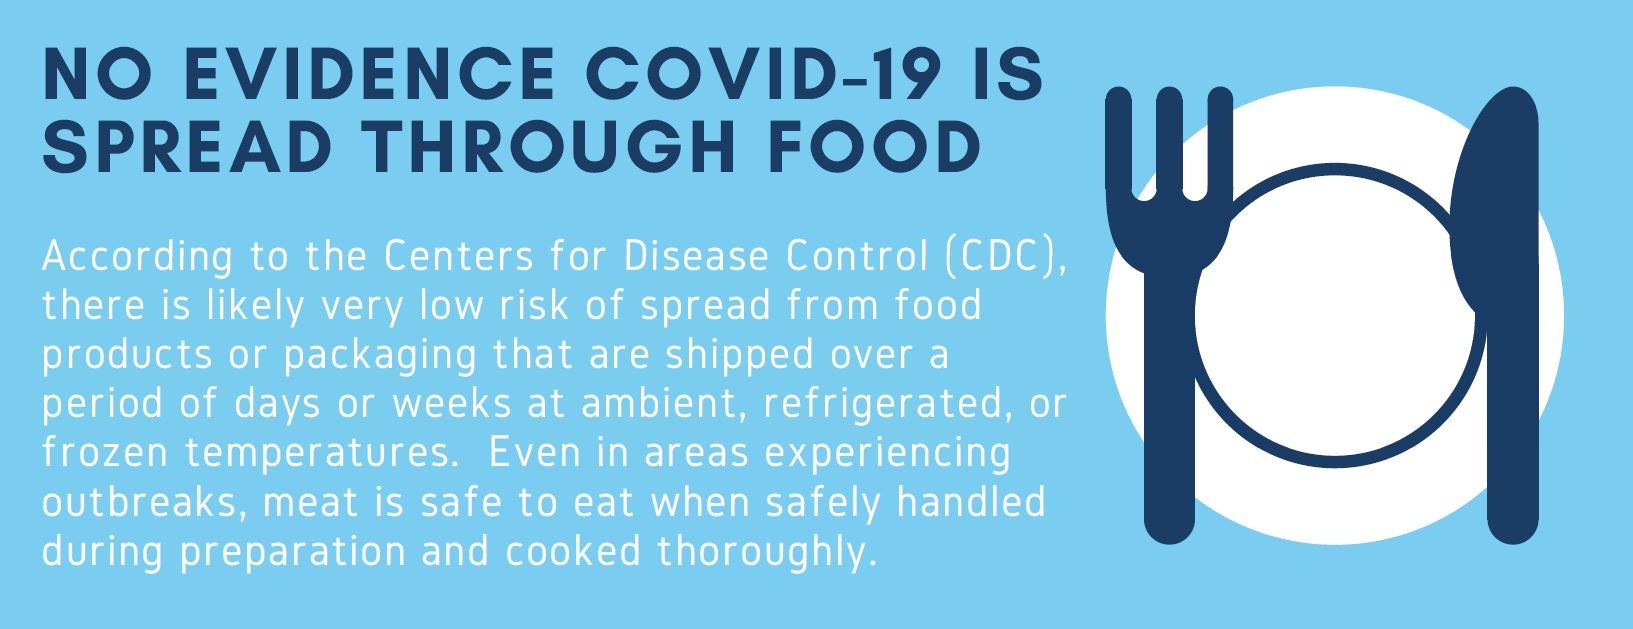 "Plate and Flatware icon, ""According to the CDC, there is likely very low risk of spread from food products or packaging that are shipped over a period of days or weeks. Meat is safe to eat when safely handled during preparation and cooked thoroughly."""